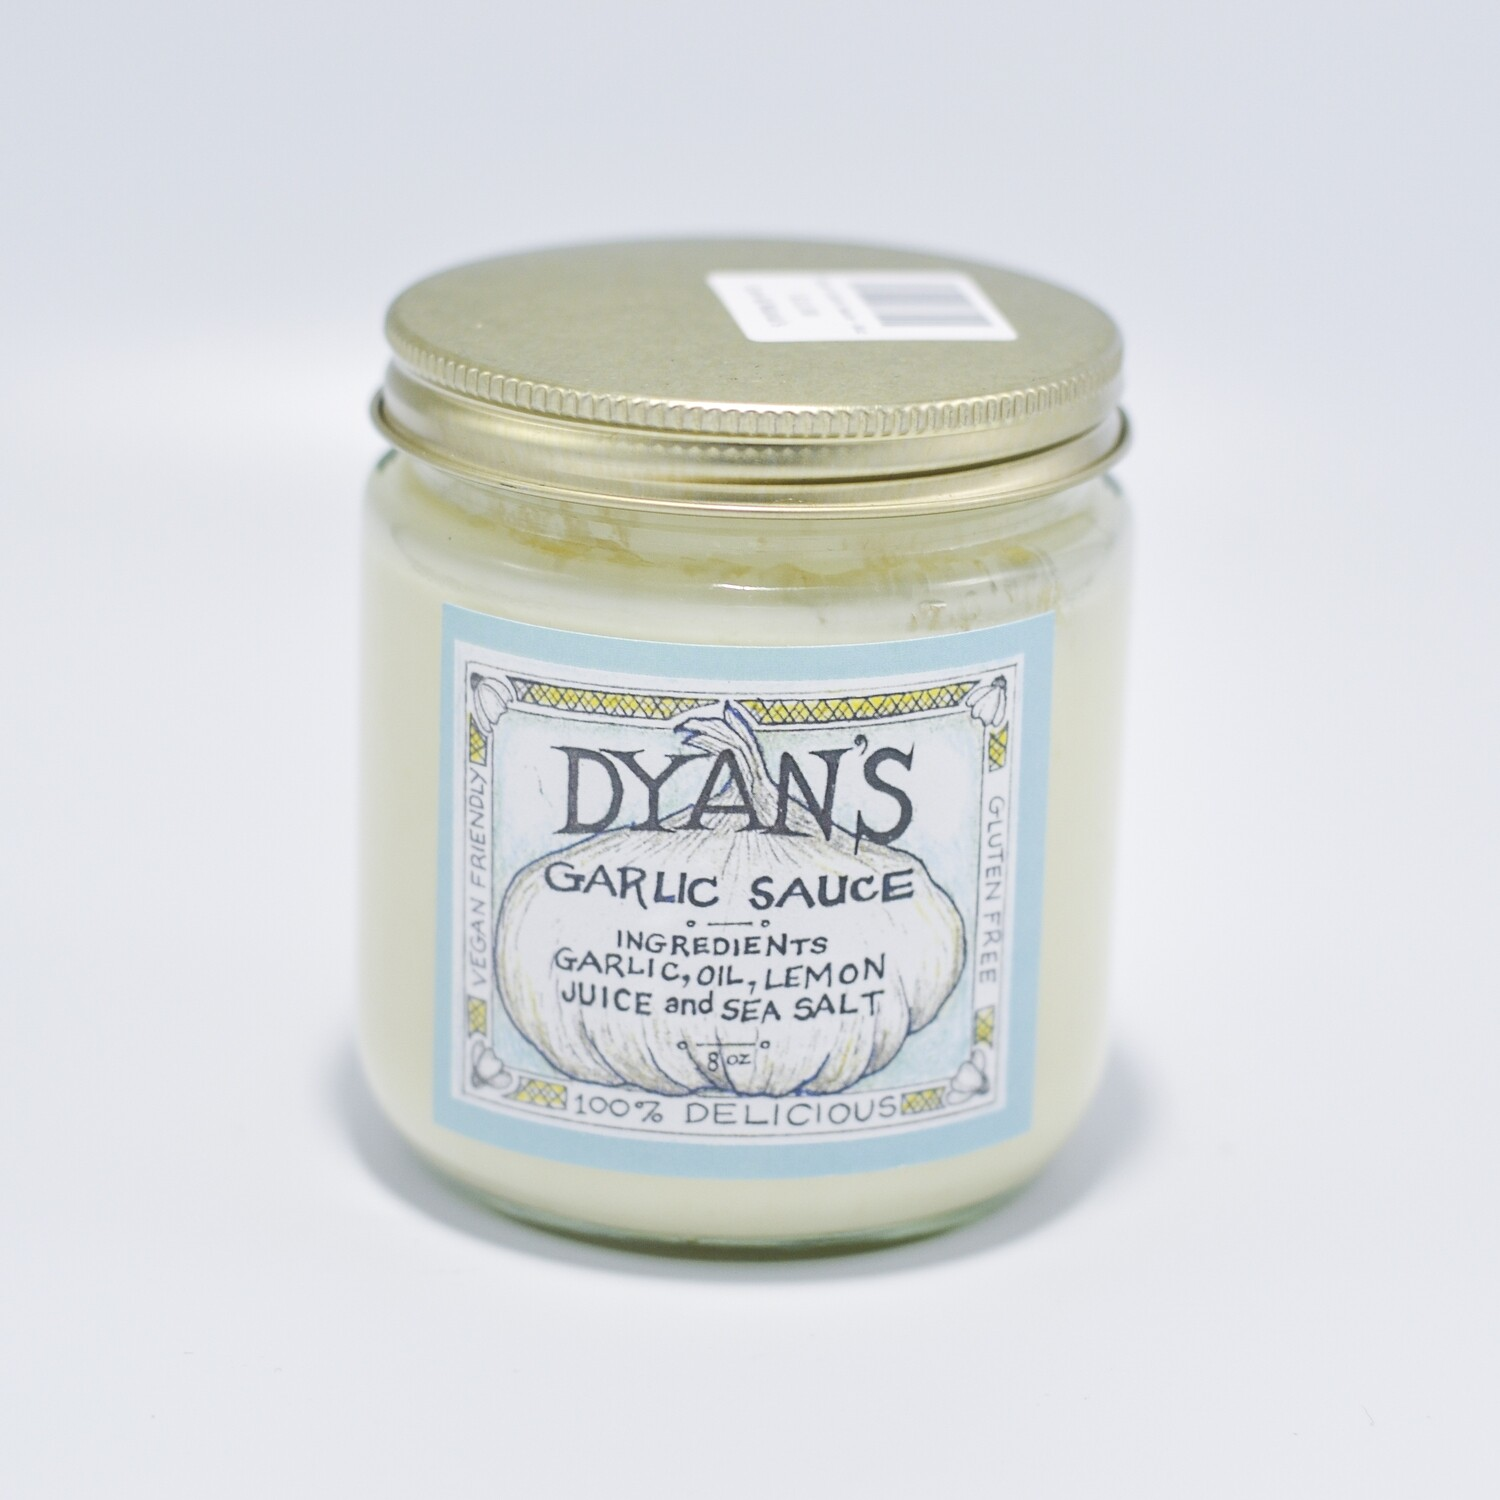 Dyan's Garlic Sauce - 8oz